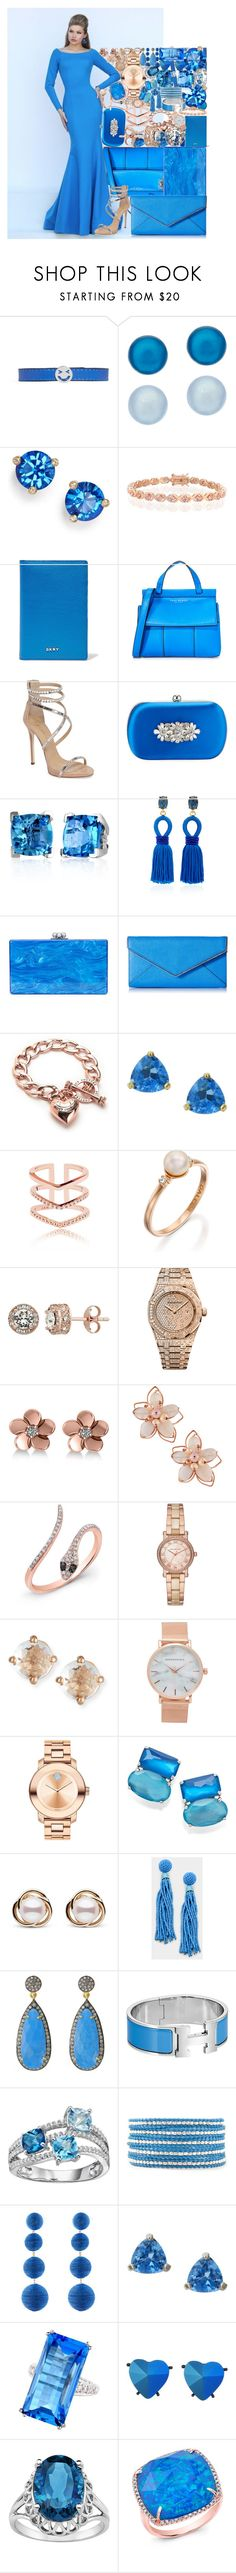 """""""Untitled #4590"""" by brooke-evans12 ❤ liked on Polyvore featuring Ruifier, Honora, Kate Spade, Bling Jewelry, DKNY, Sherri Hill, Tory Burch, Giuseppe Zanotti, Badgley Mischka and Effy Jewelry"""